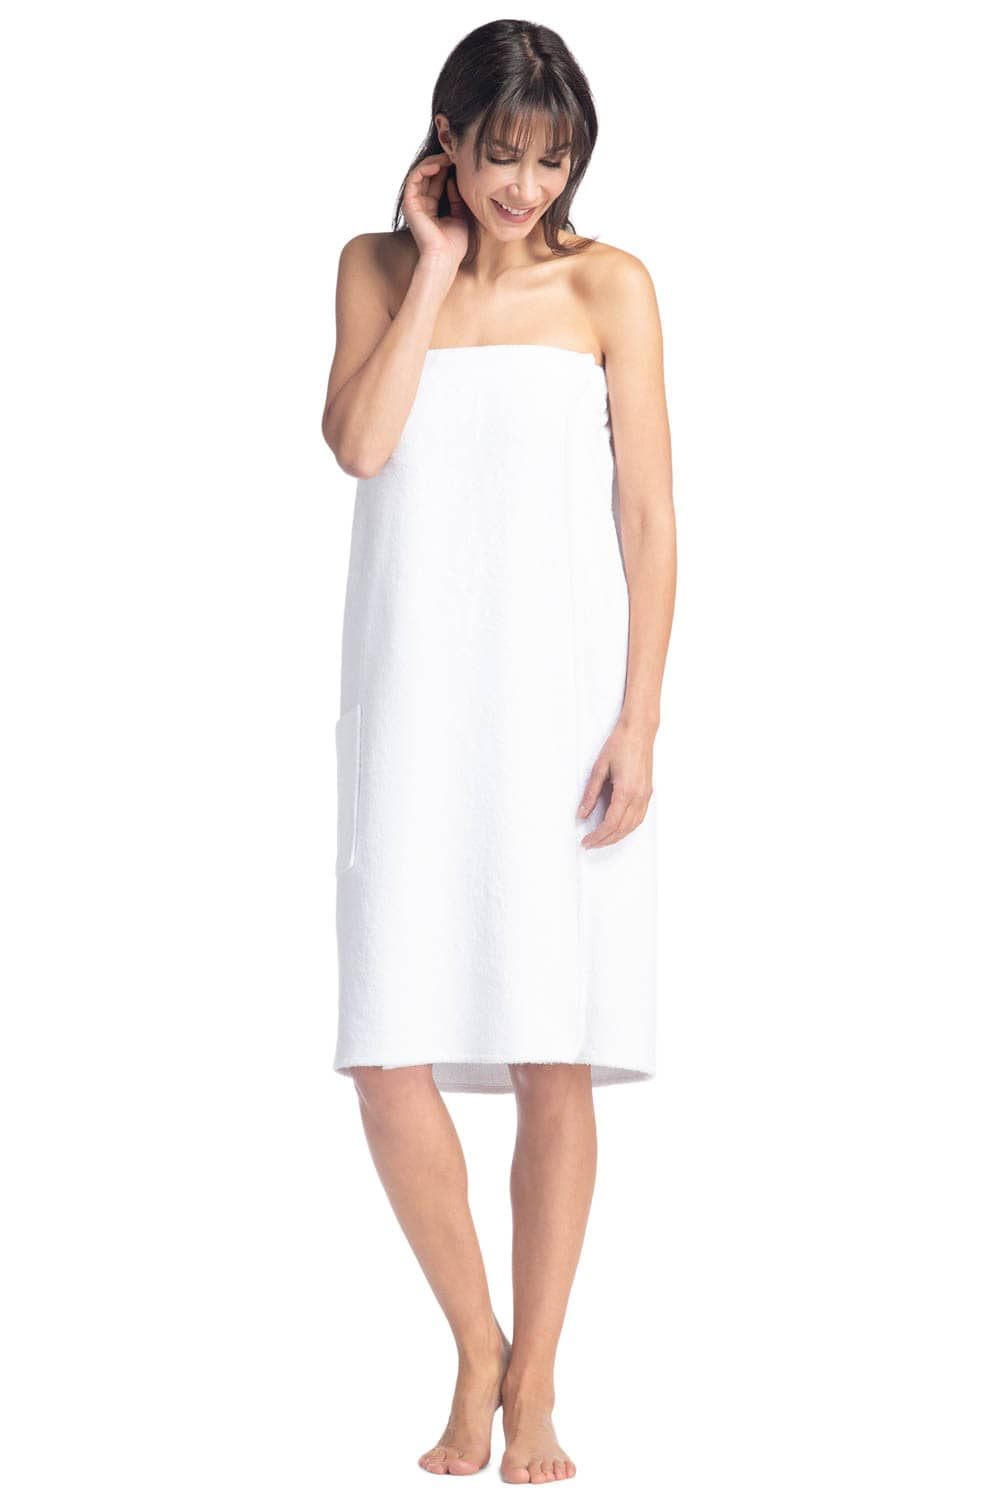 Women's Resort Style Terry Cloth Spa Wrap - Fishers Finery